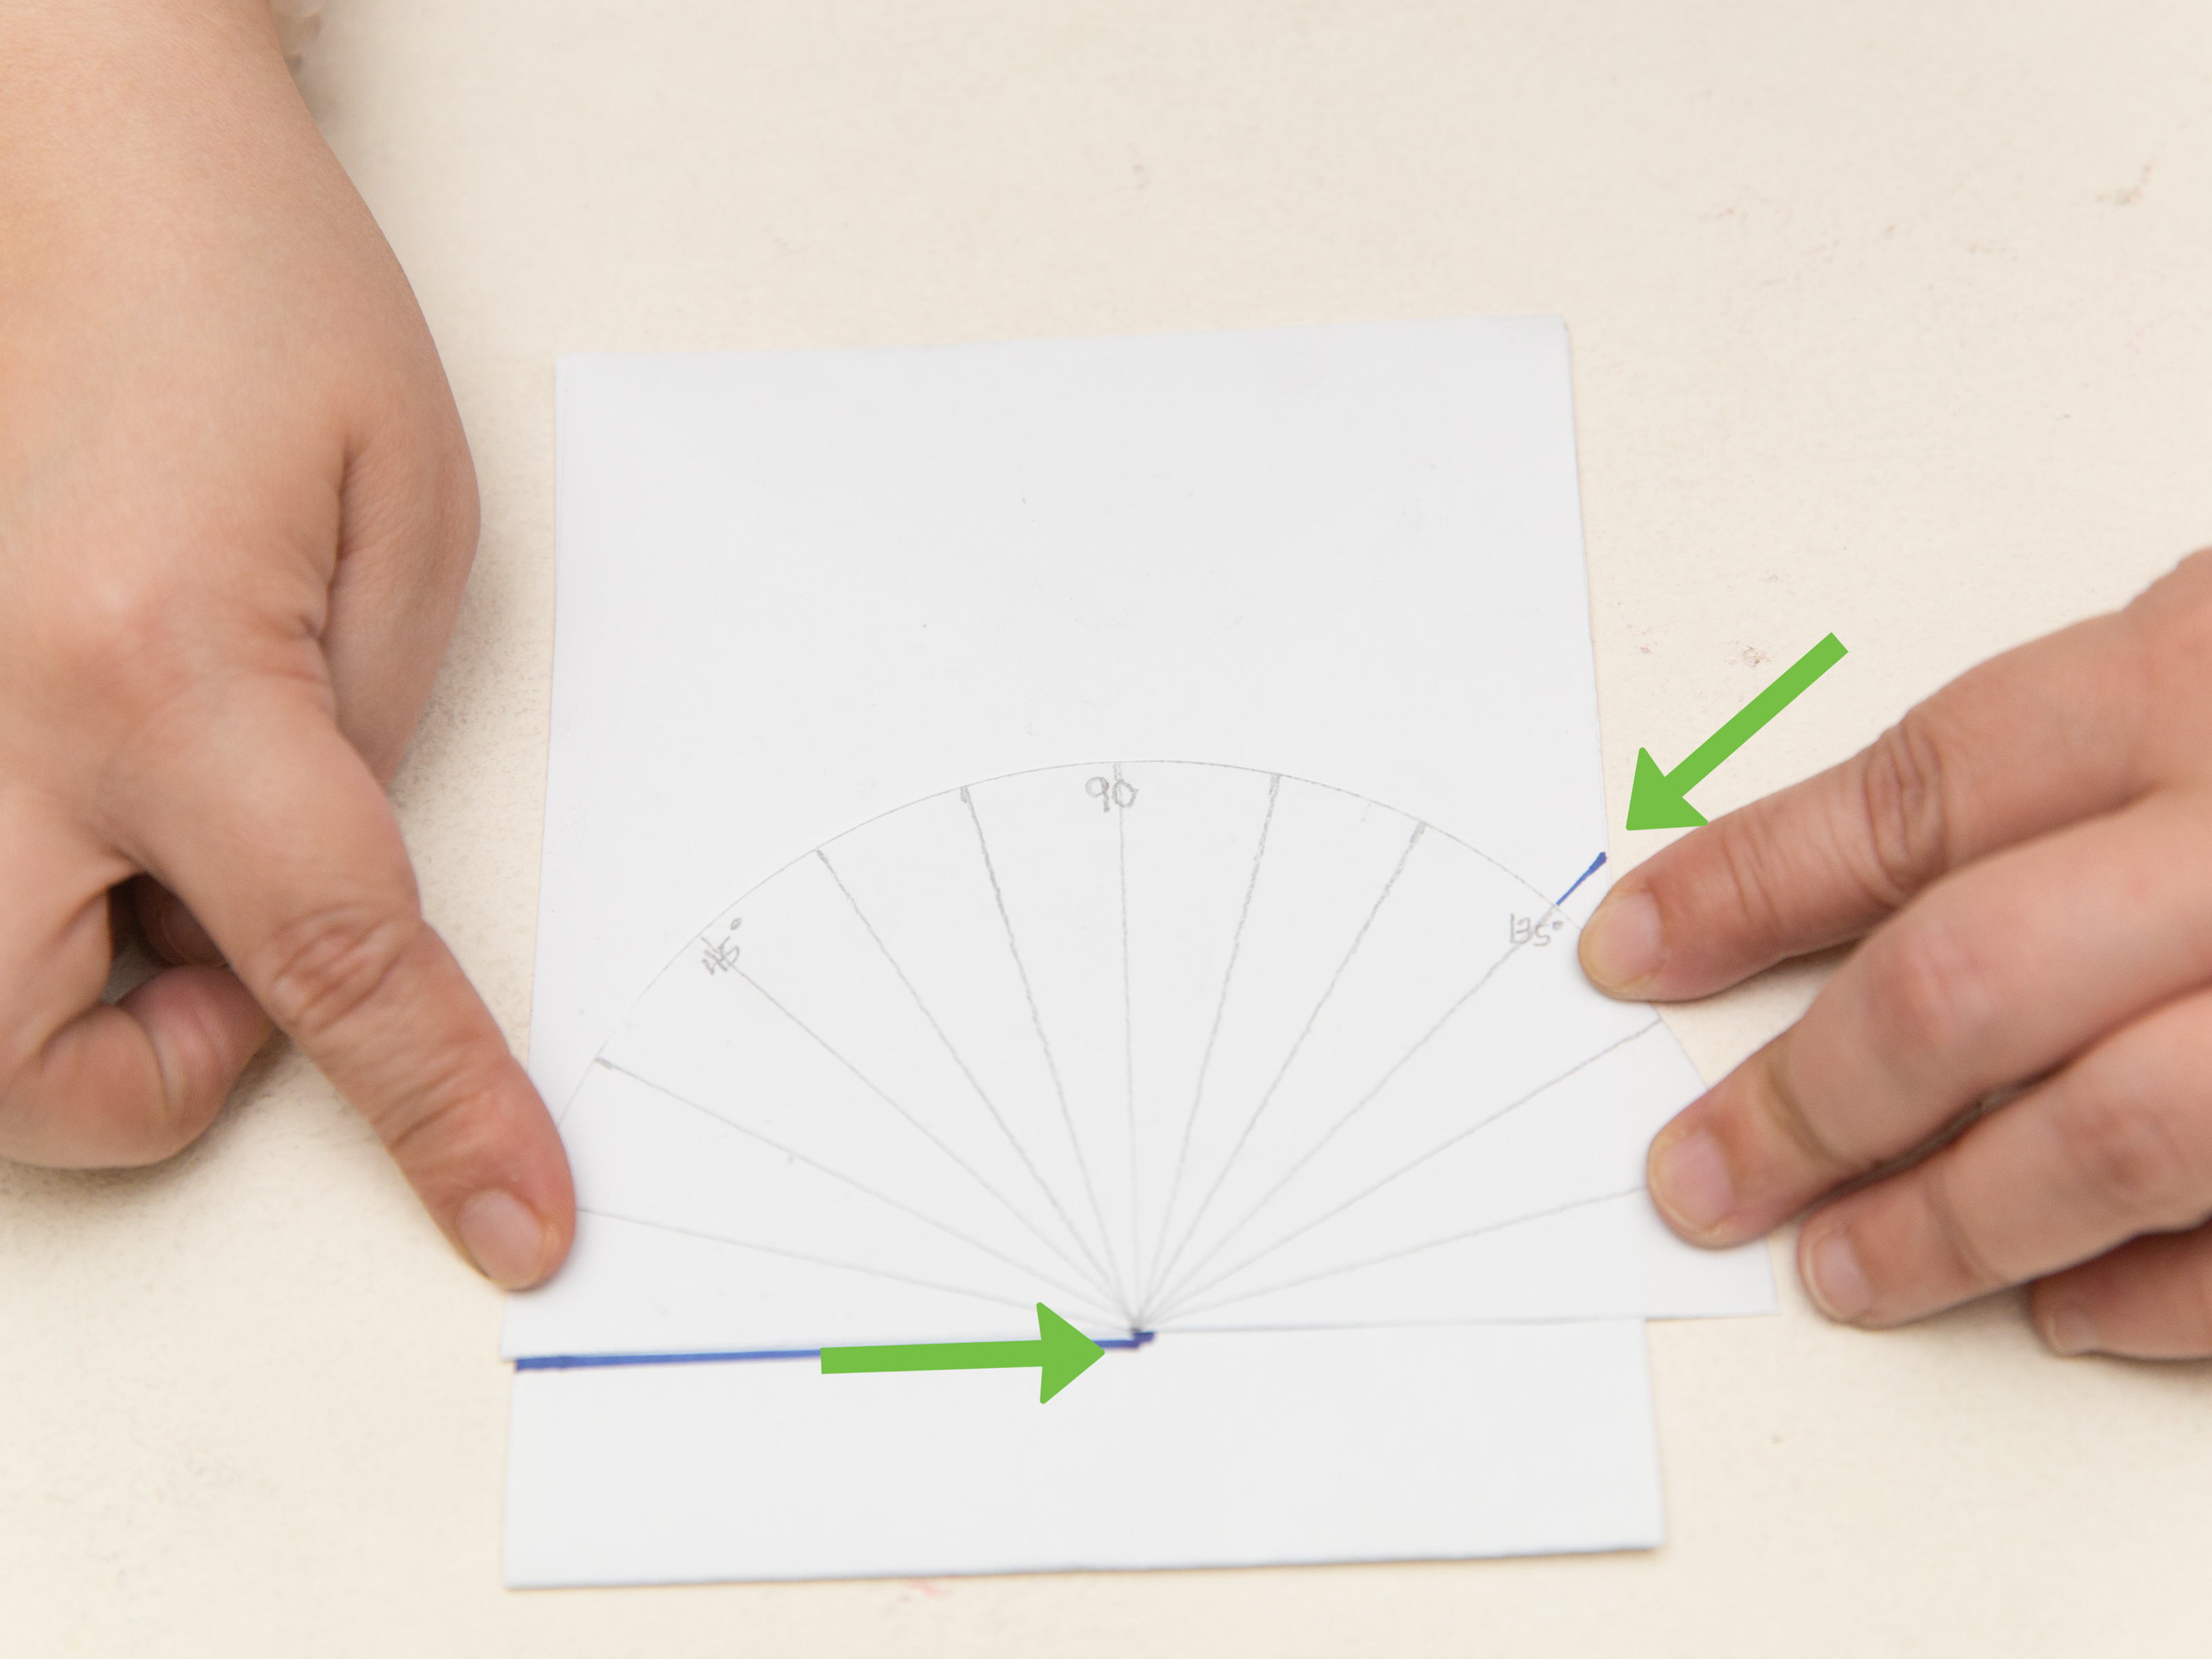 3 Ways To Make A Protractor